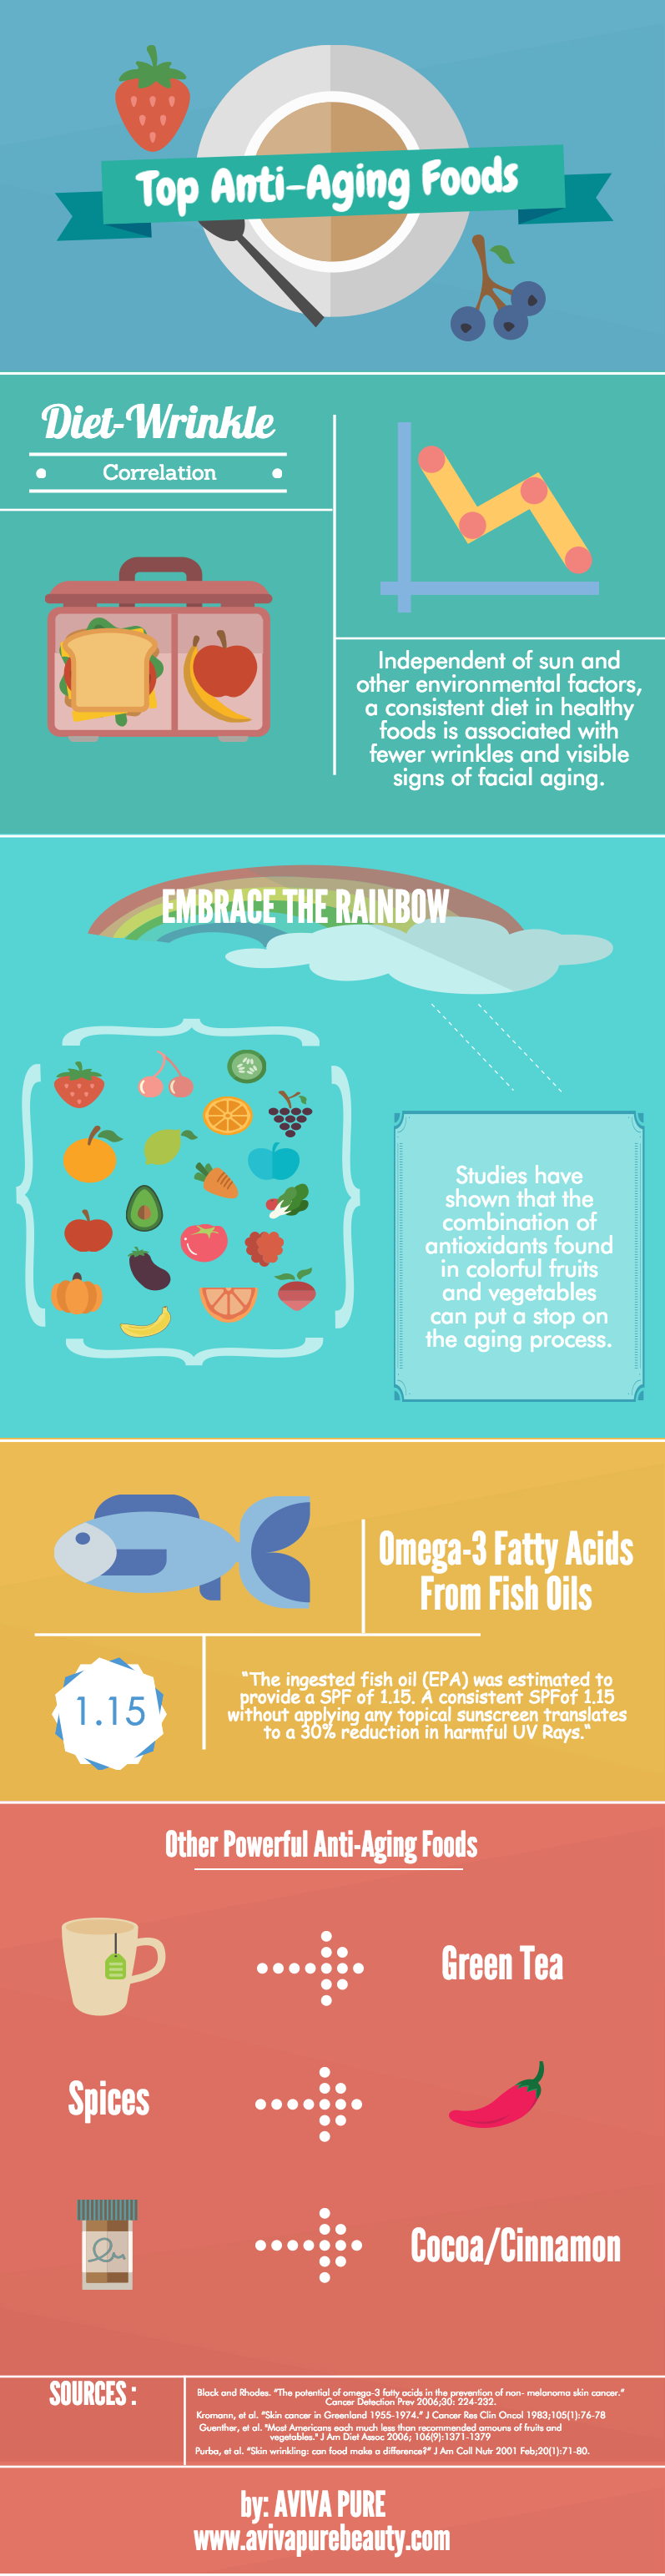 Top Anti-Aging Foods Infographic by Aviva Pure